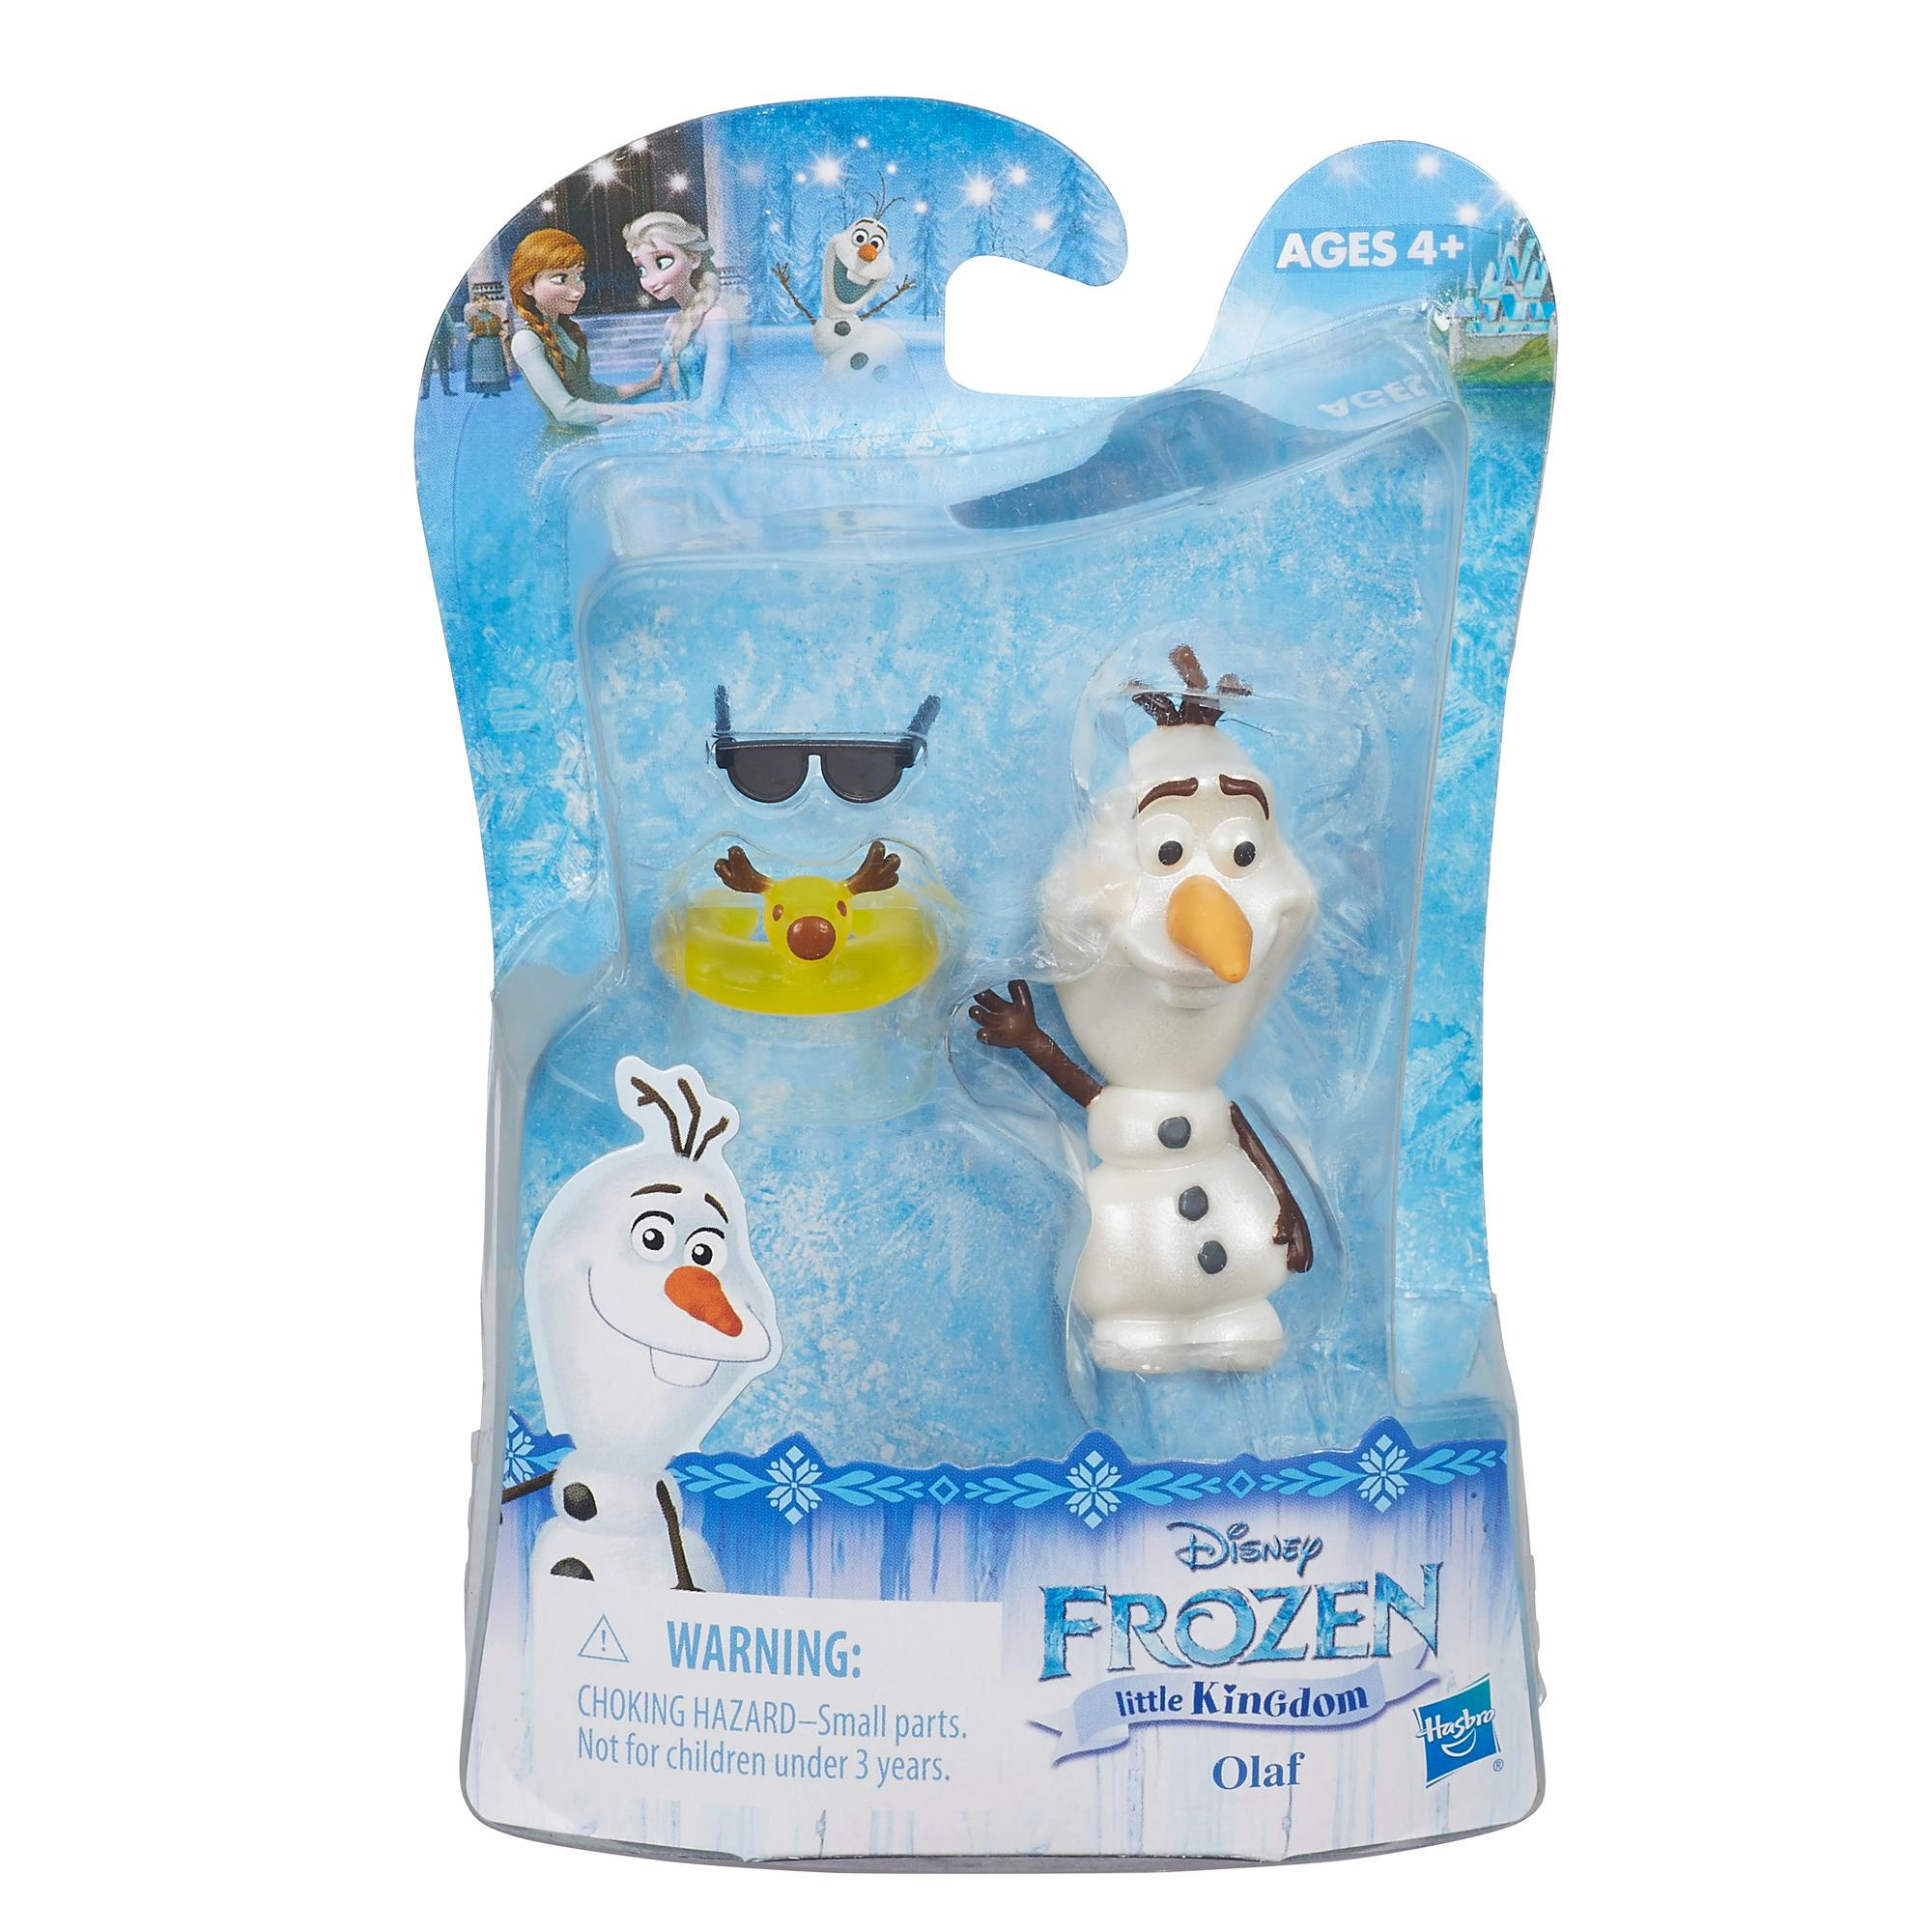 FROZEN MINI SORTIDO OLAF